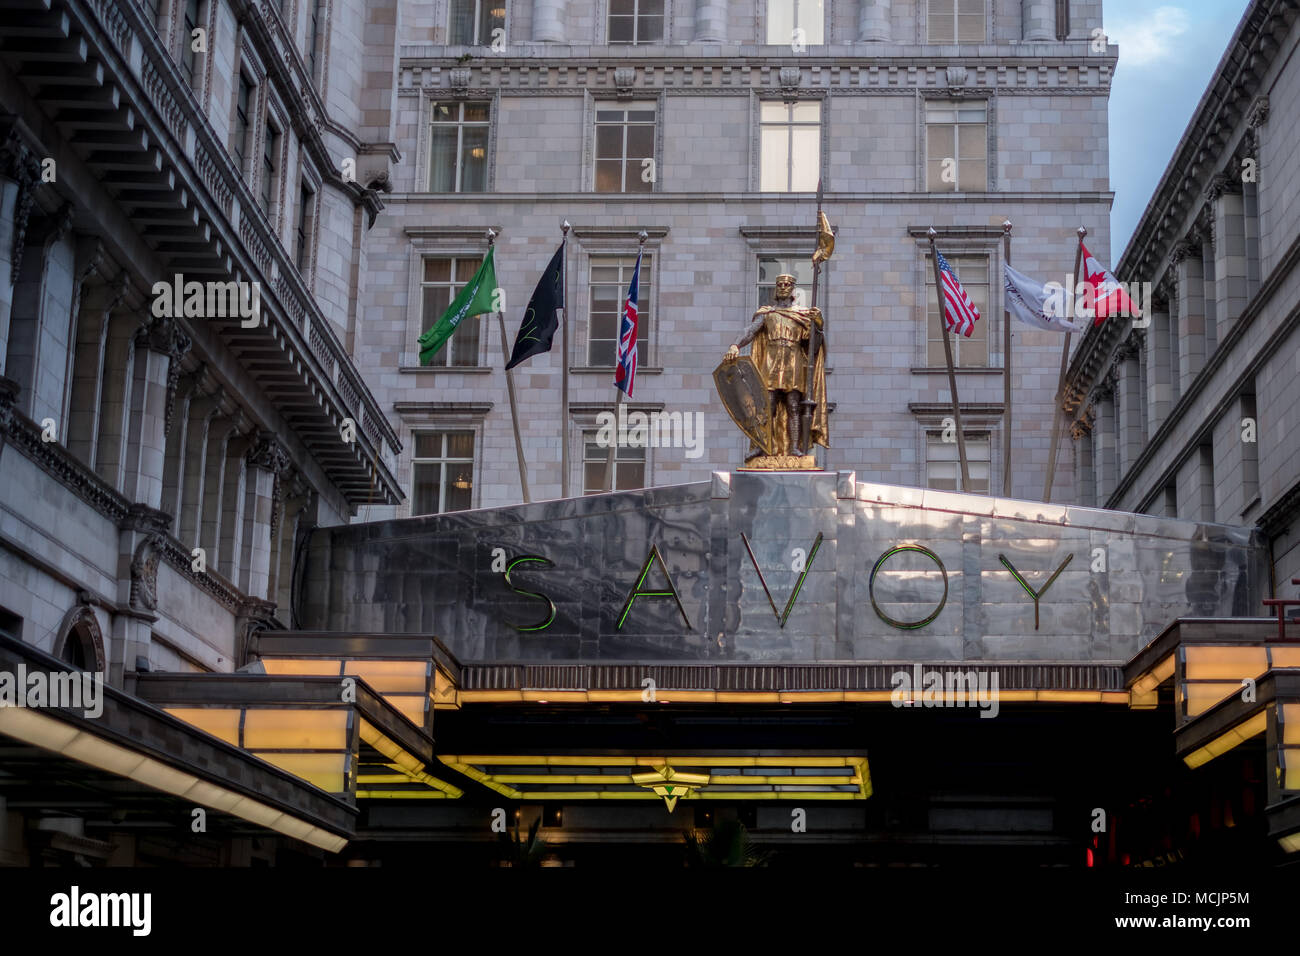 London UK, Entrance to the art deco style Savoy Hotel off The Strand. - Stock Image